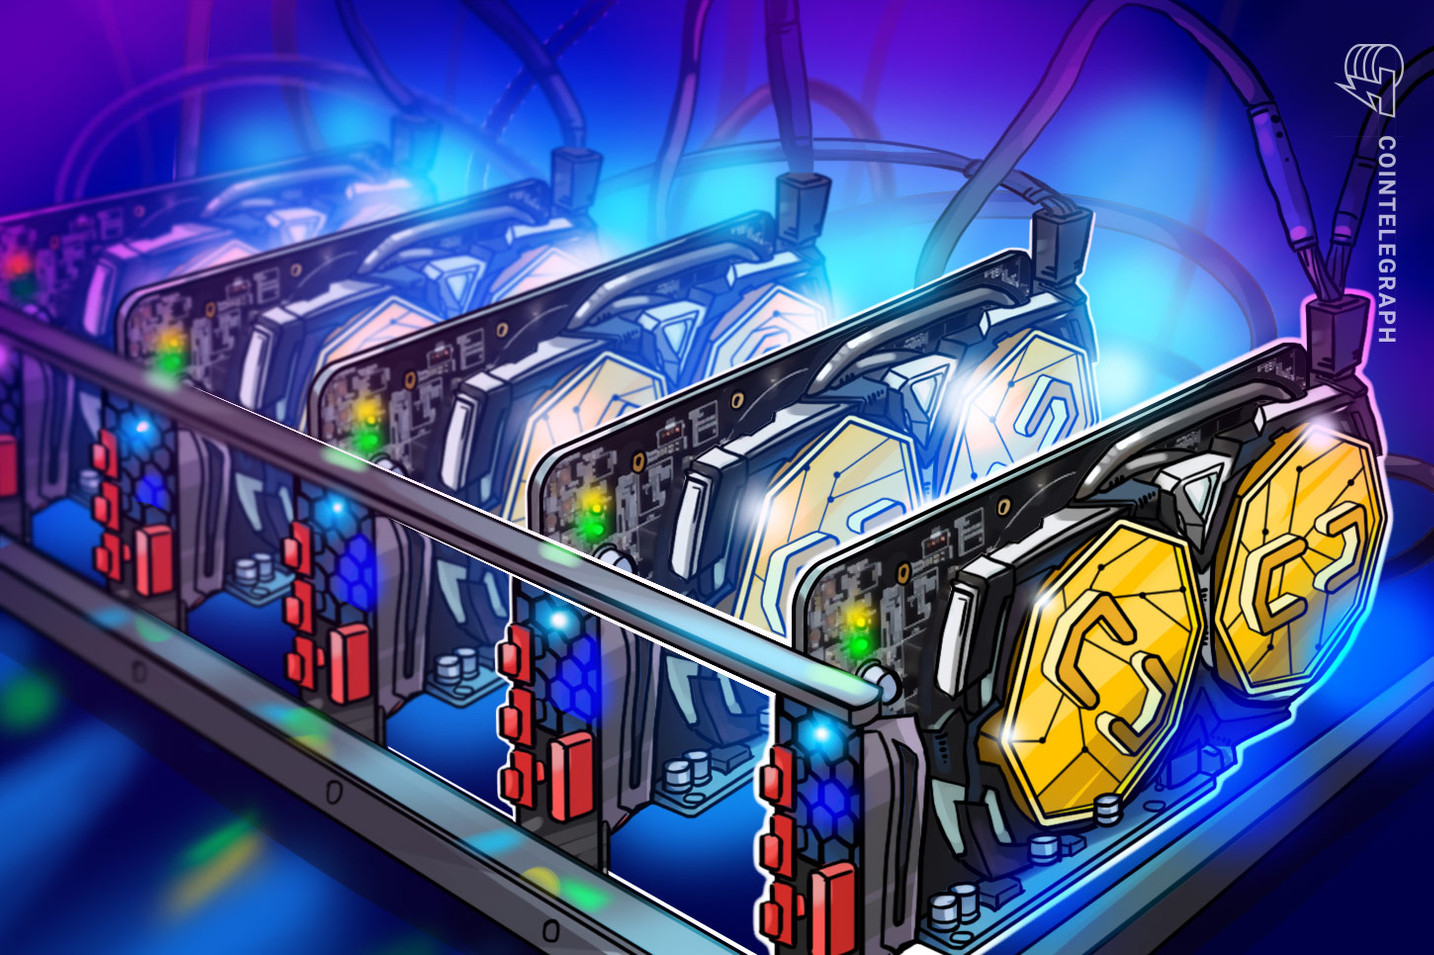 Marathon and Riot battle for the title of America's biggest Bitcoin miner